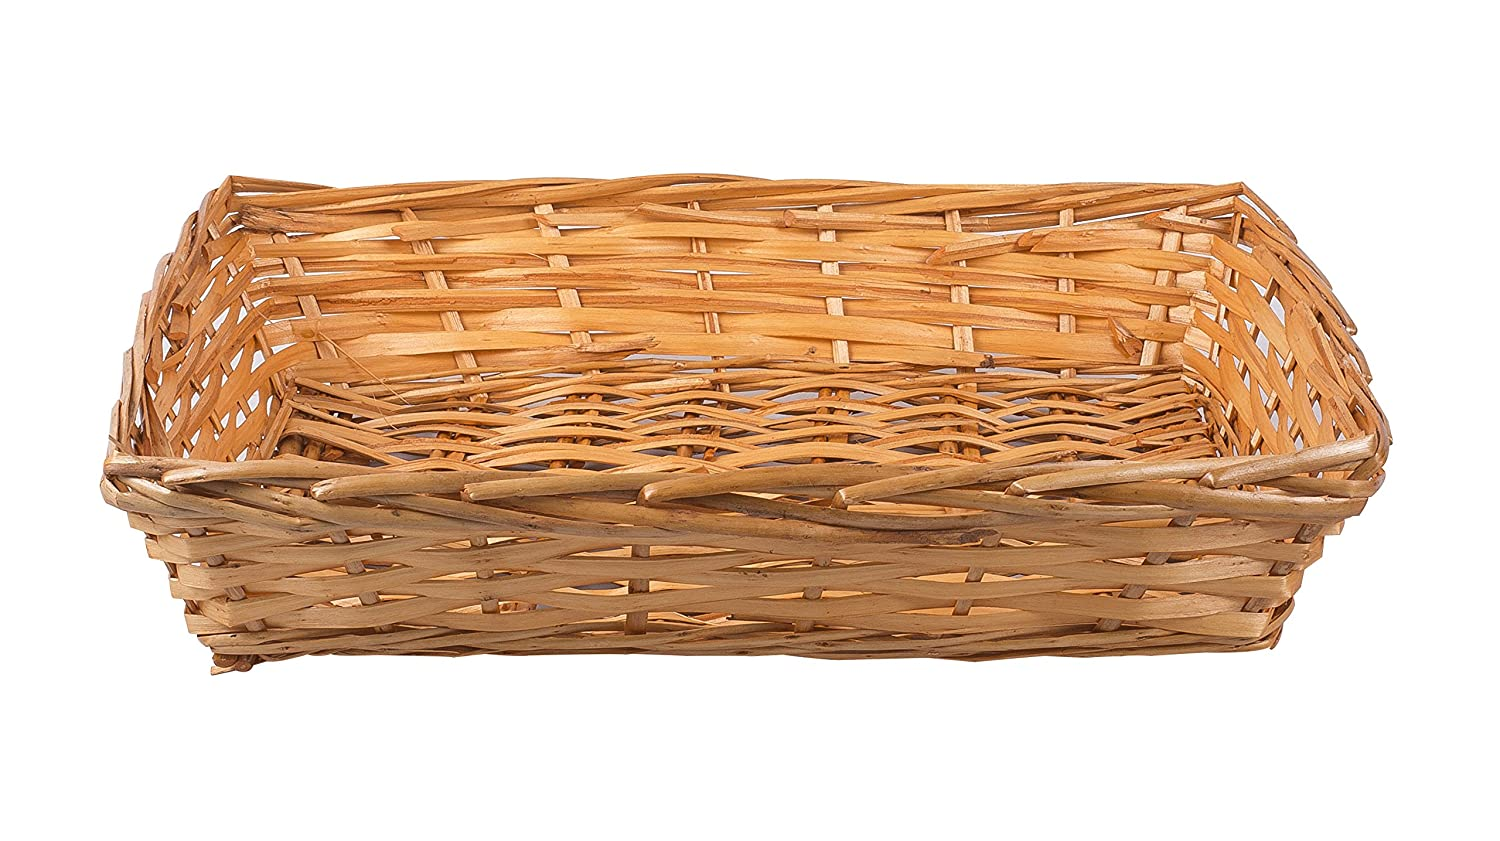 5 x Large Honey Natural Wicker Bread Basket Storage Hamper Display Tray Basic House Ltd